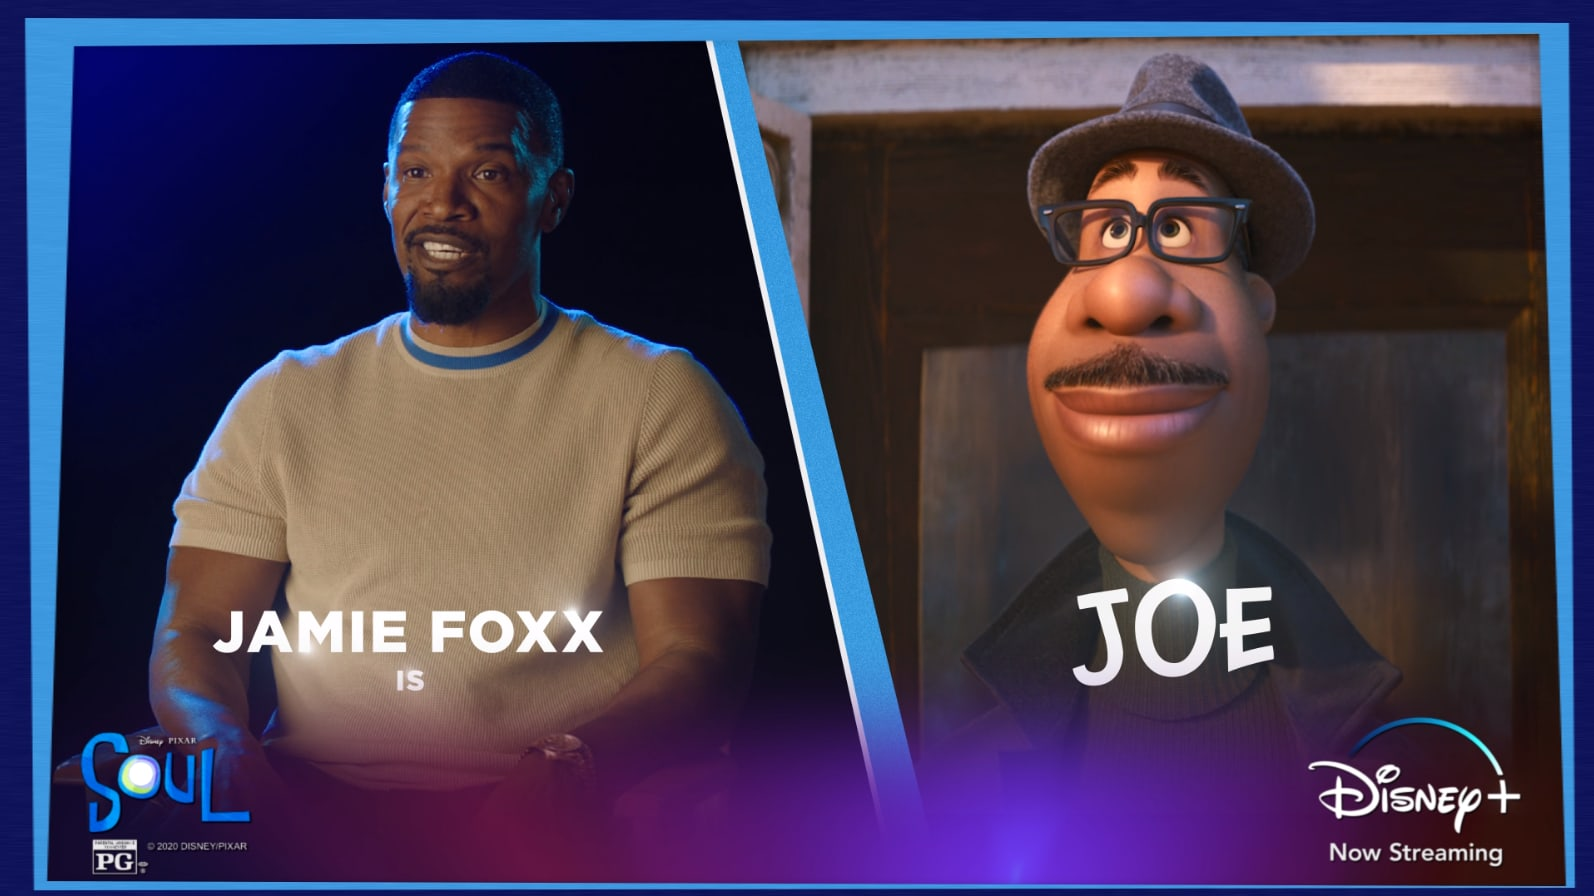 Jaimie Foxx Tina Fey Jazz Up Disney+ With Pixar's Soul DJ Hustle HustleTV.tv HustleTV